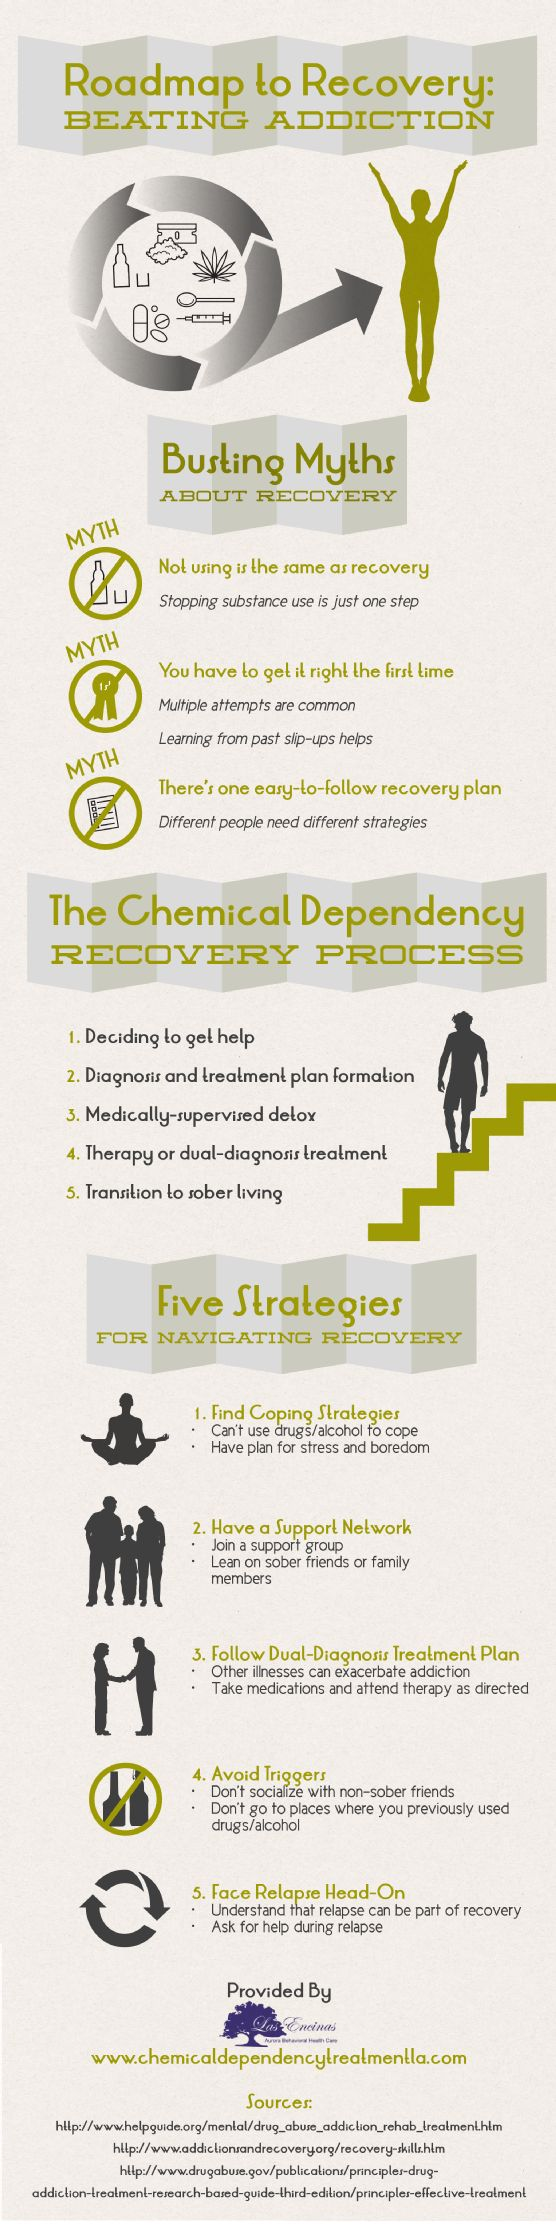 Deciding to get help is the first step of the chemical dependency recovery process. Discover the other steps to take when battling addiction by viewing this infographic from a substance abuse treatment center in Pasadena.